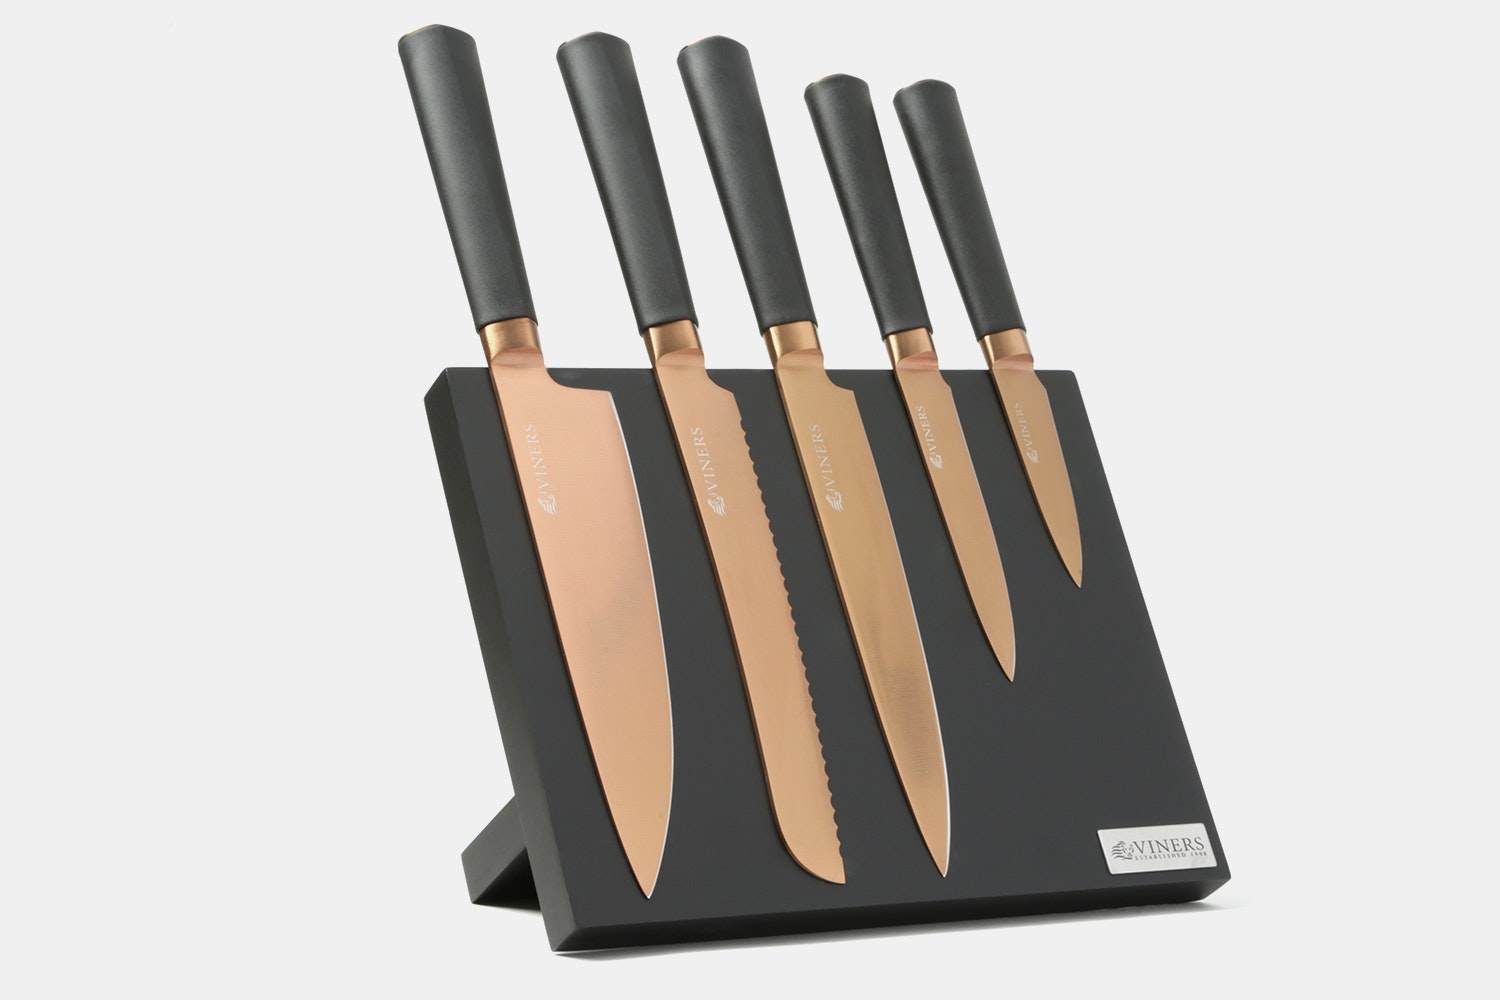 Viners Titan 5-Piece Knife Set With Magnetic Block